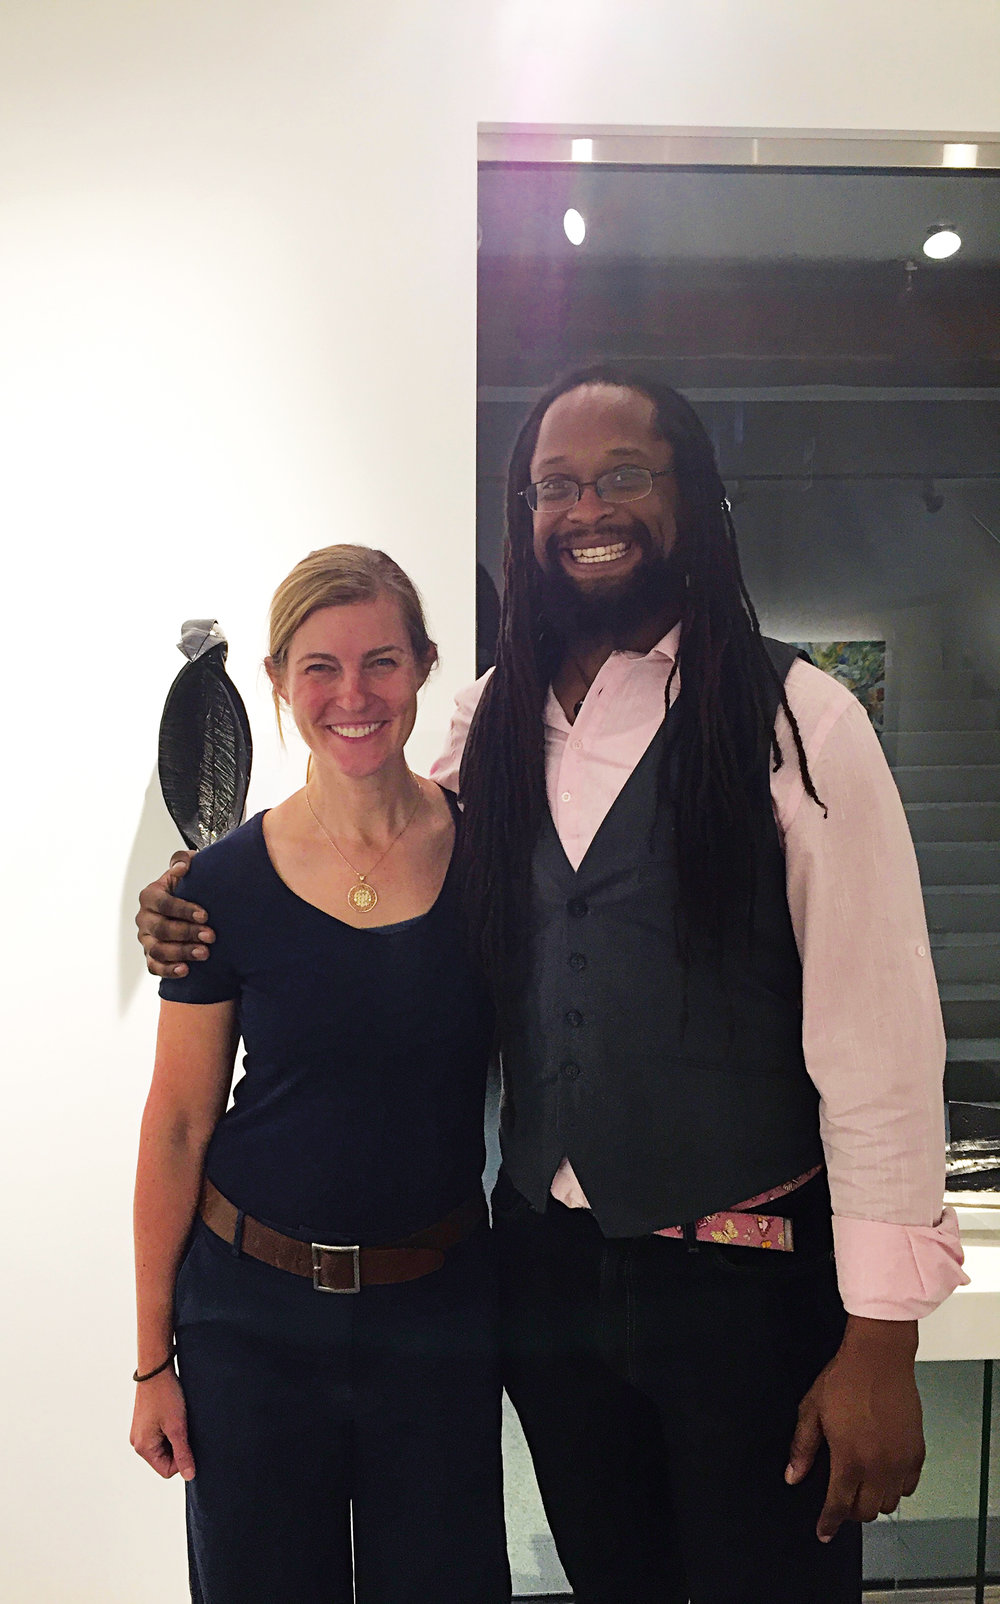 1993 Formmates KT Taylor (l.) and Gamal Smith at the Abigail Ogilvy Gallery in Boston.